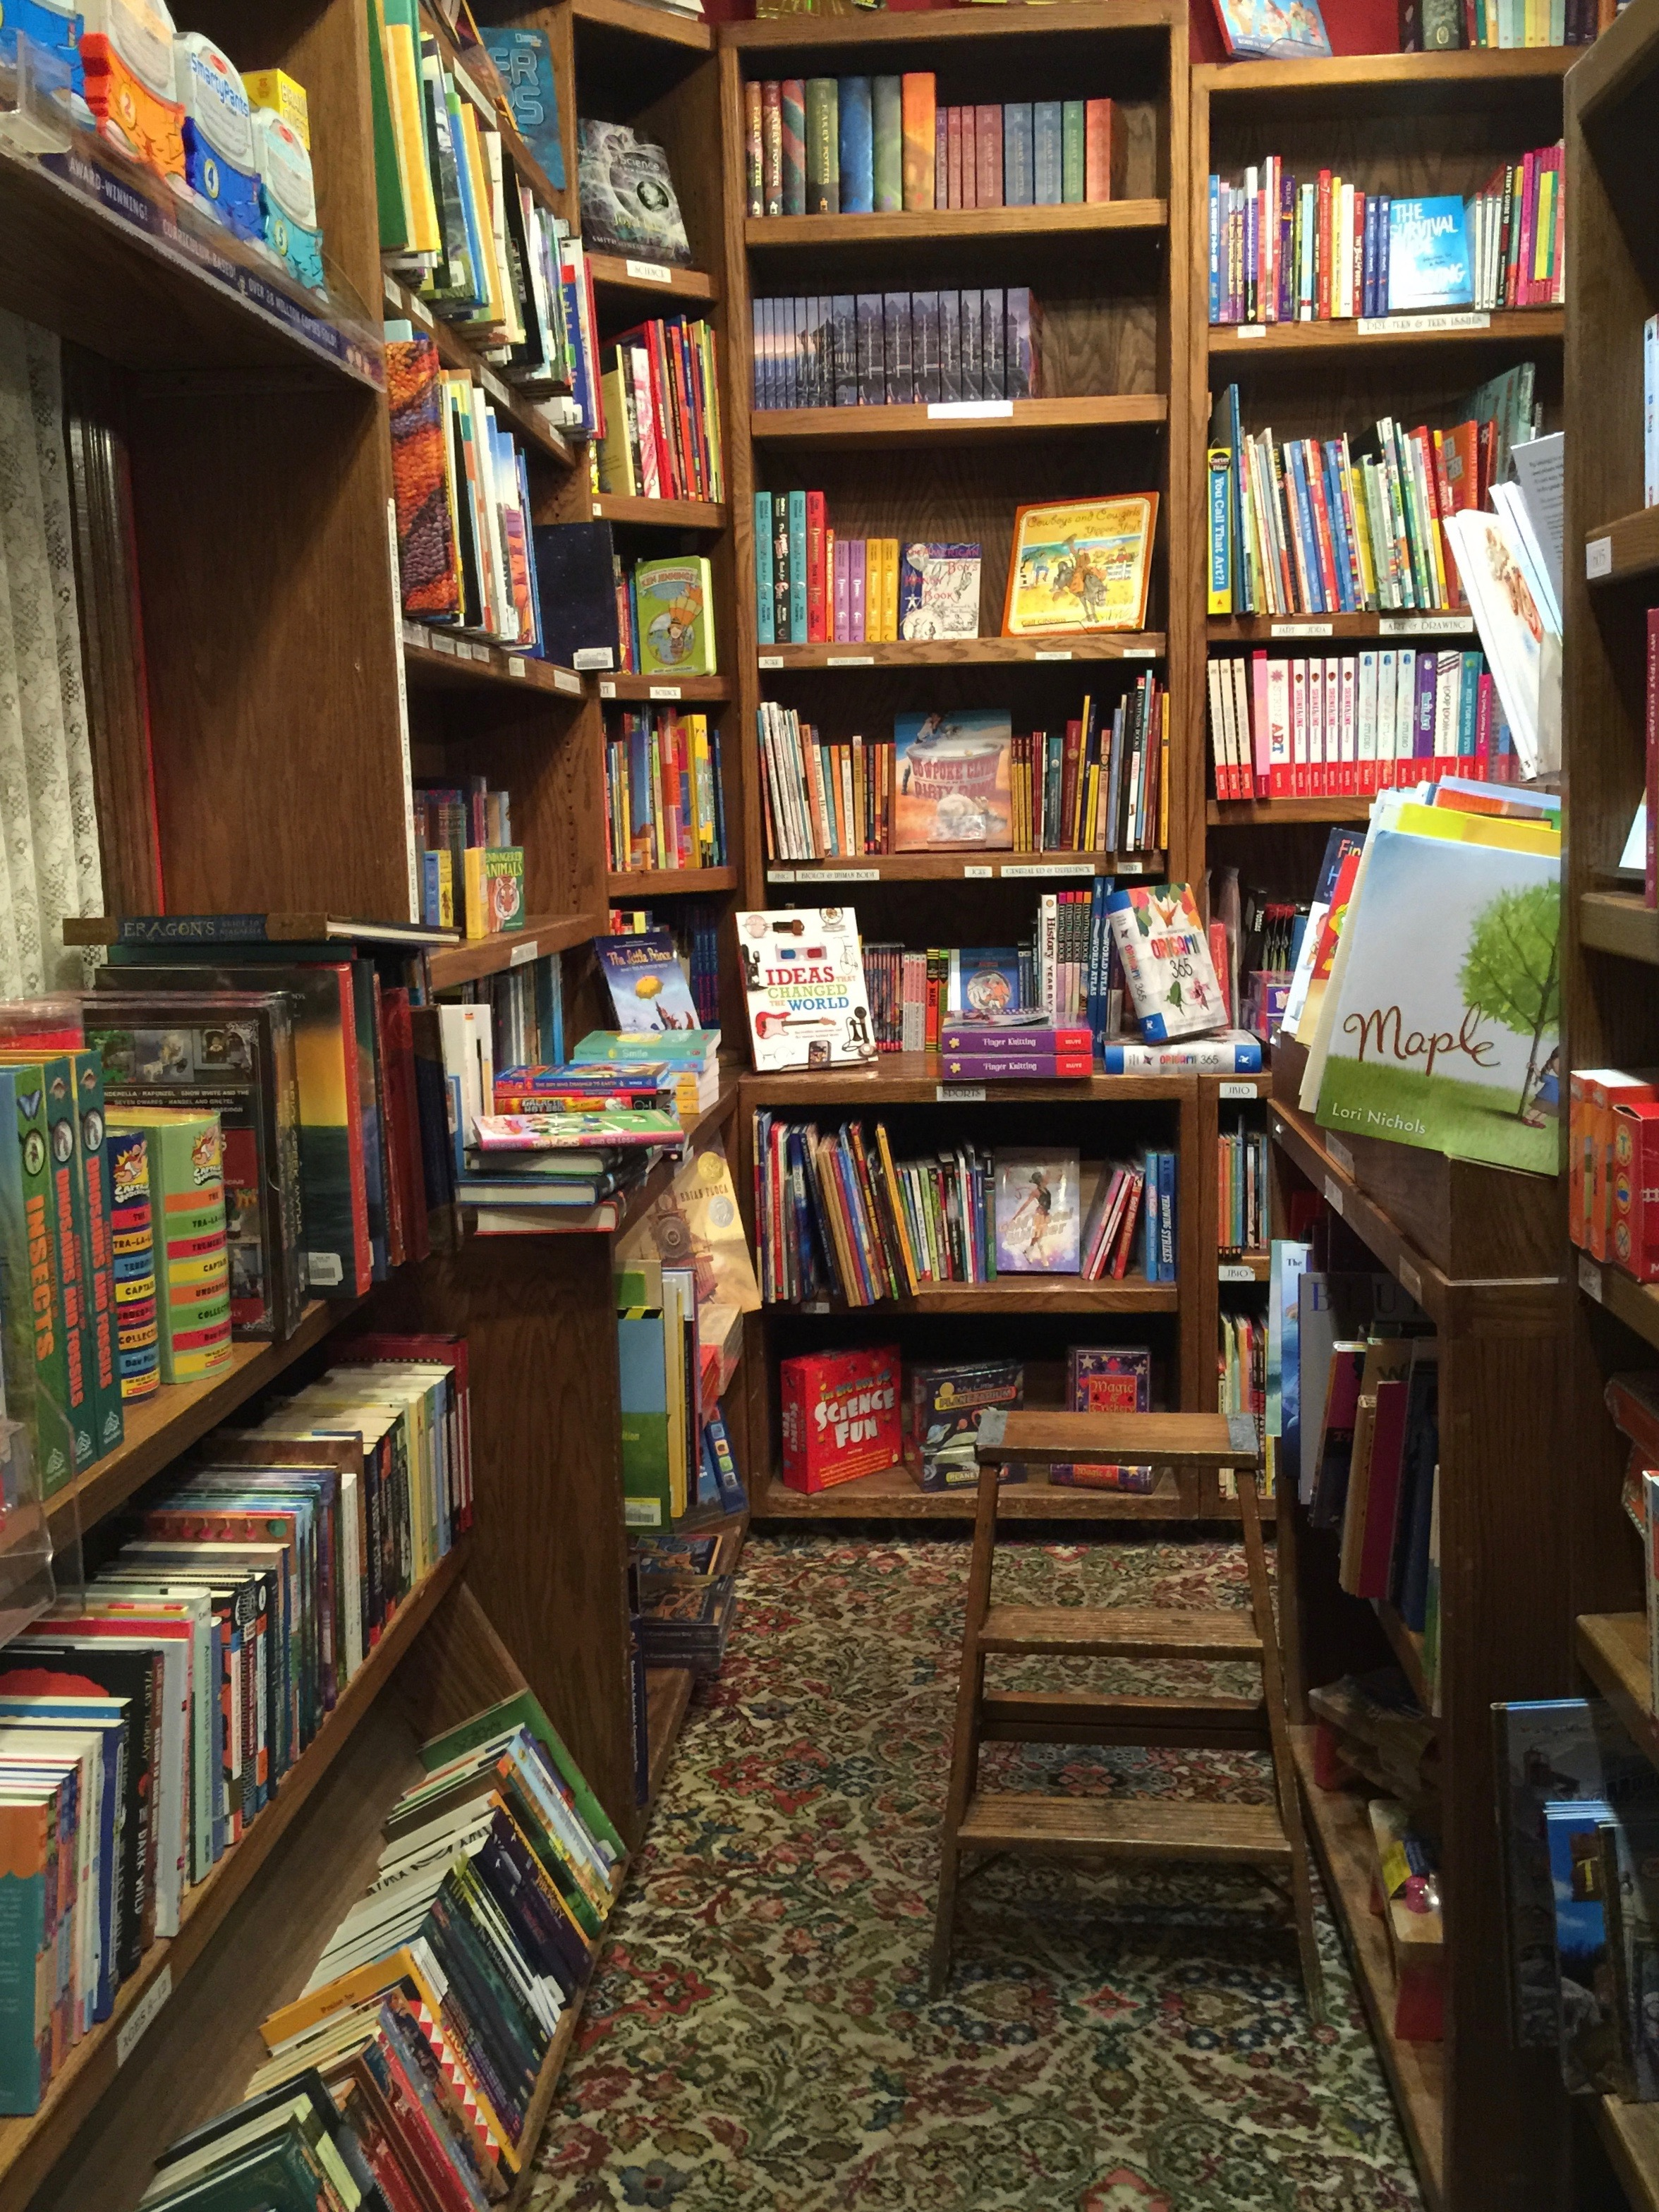 Explore Booksellers Children's Section